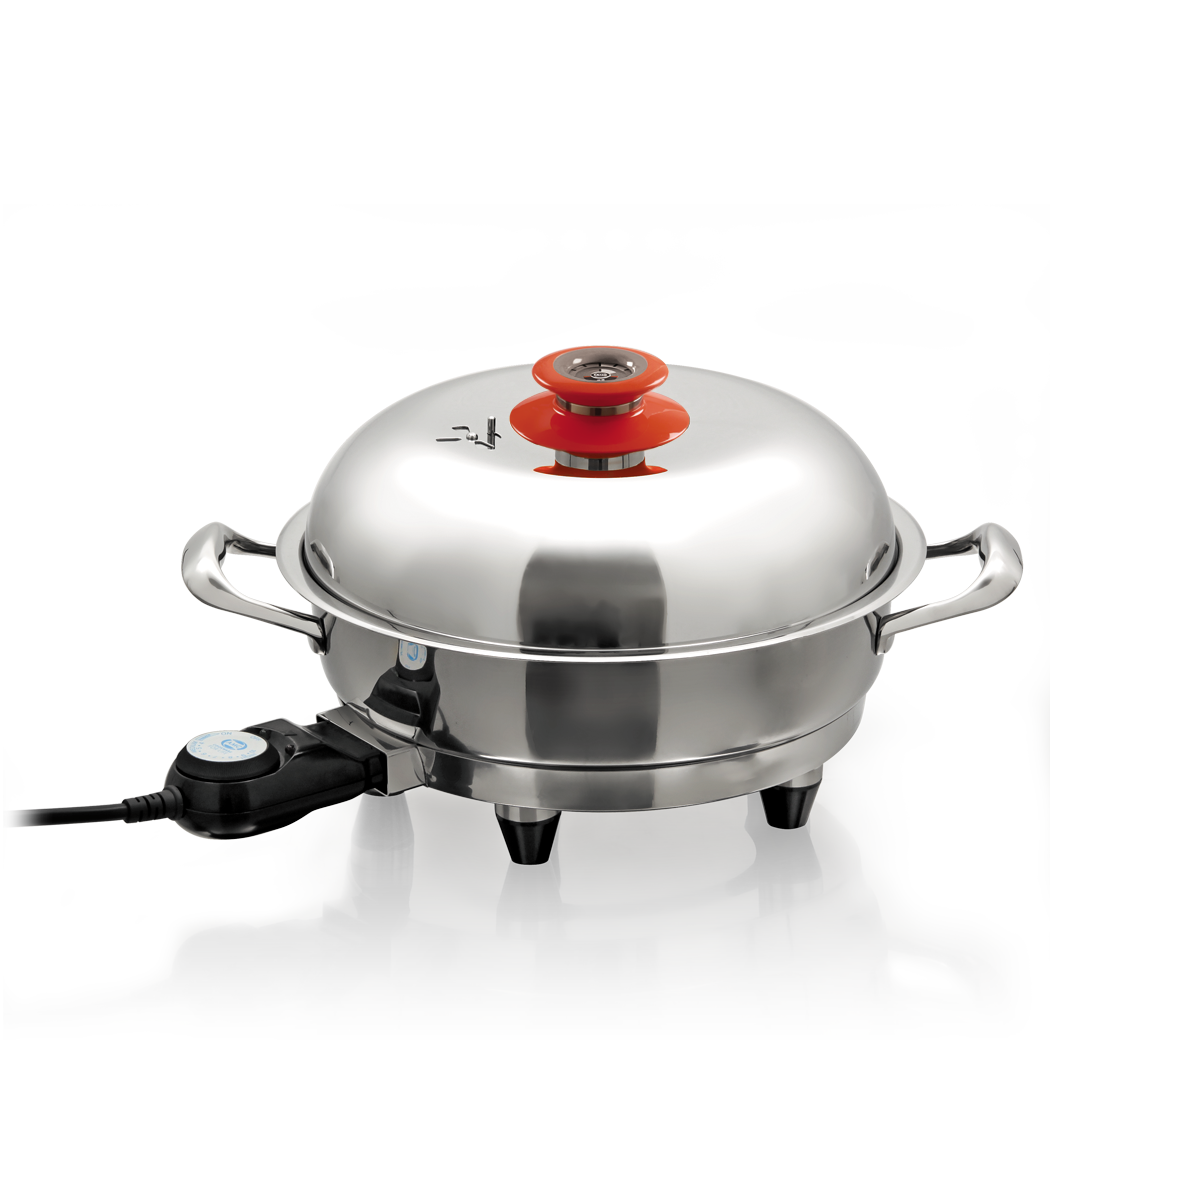 Buy A 30 Cm Electric Frying Pan Electrified Units For